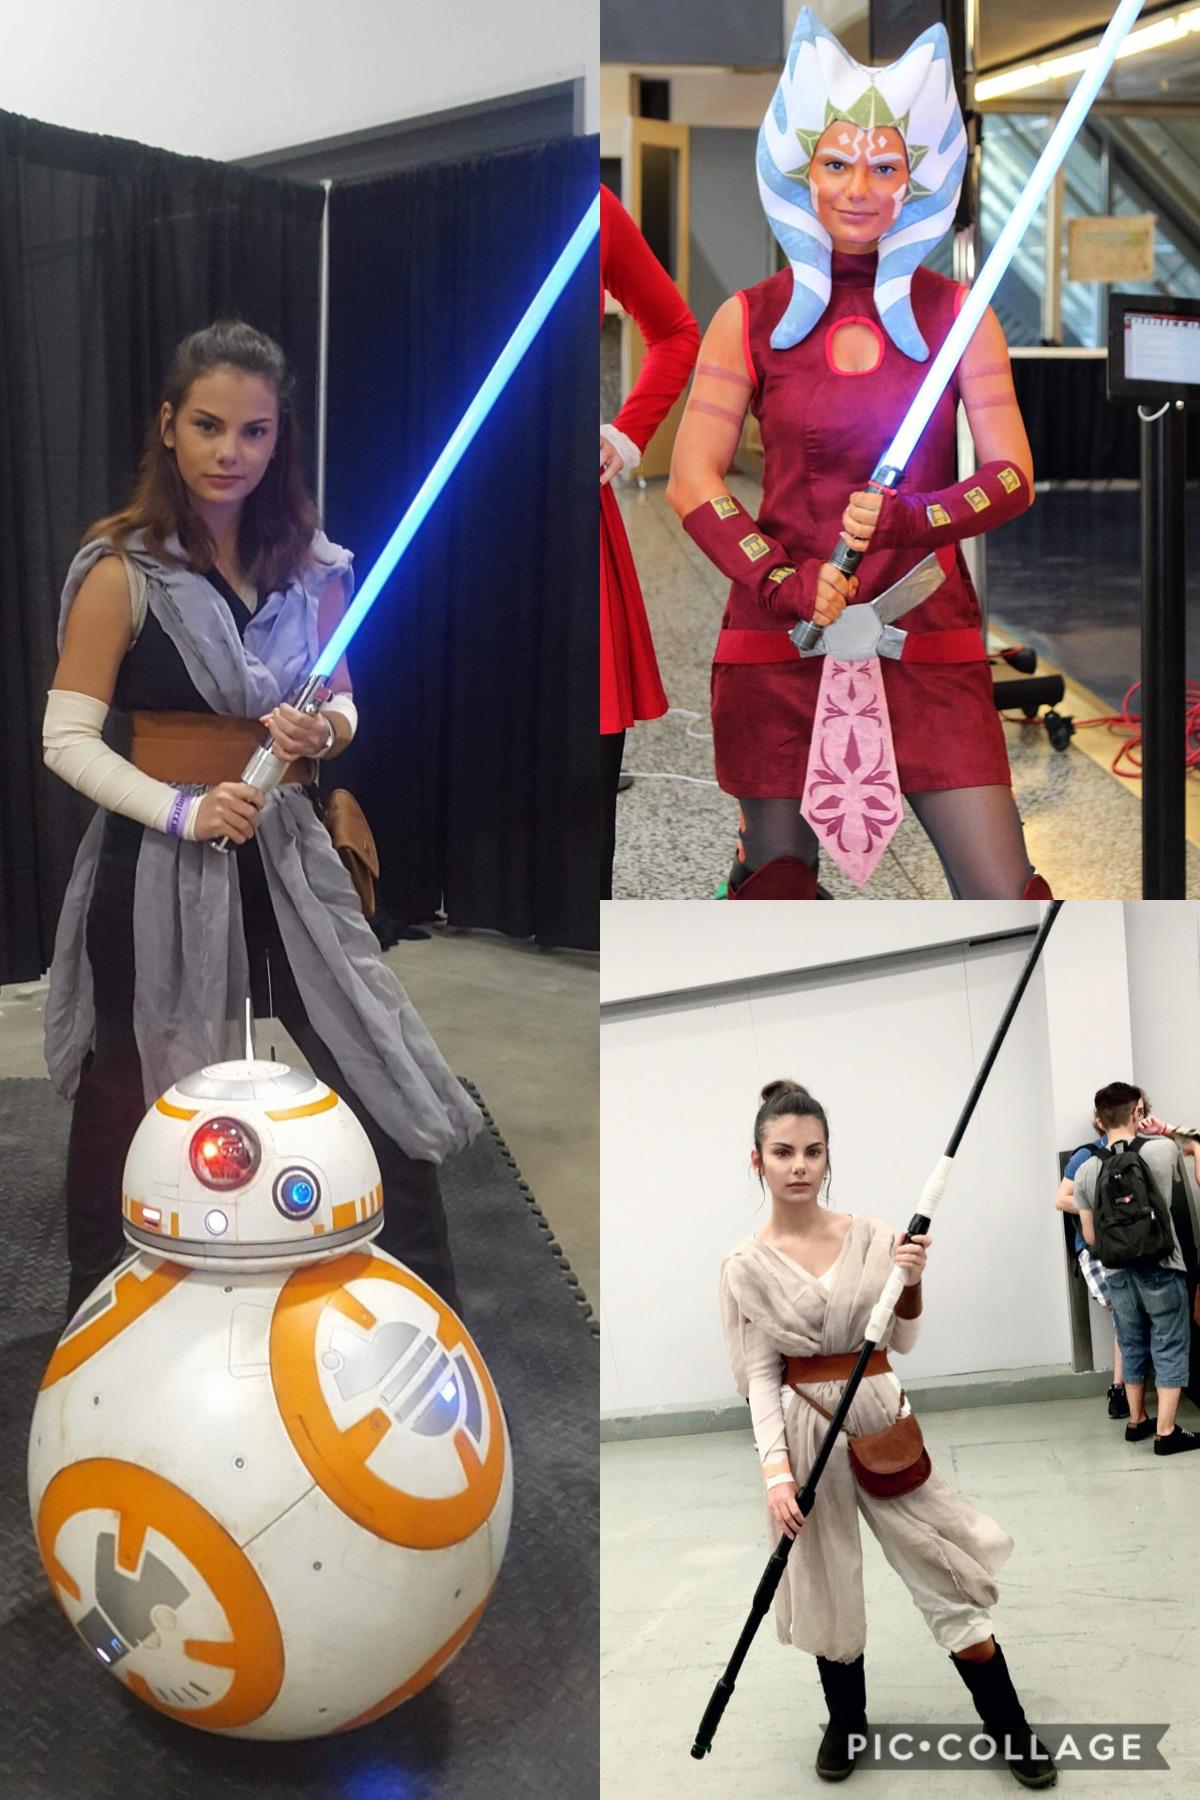 I'm a cosplay noob, but here are my Star Wars cosplays so far